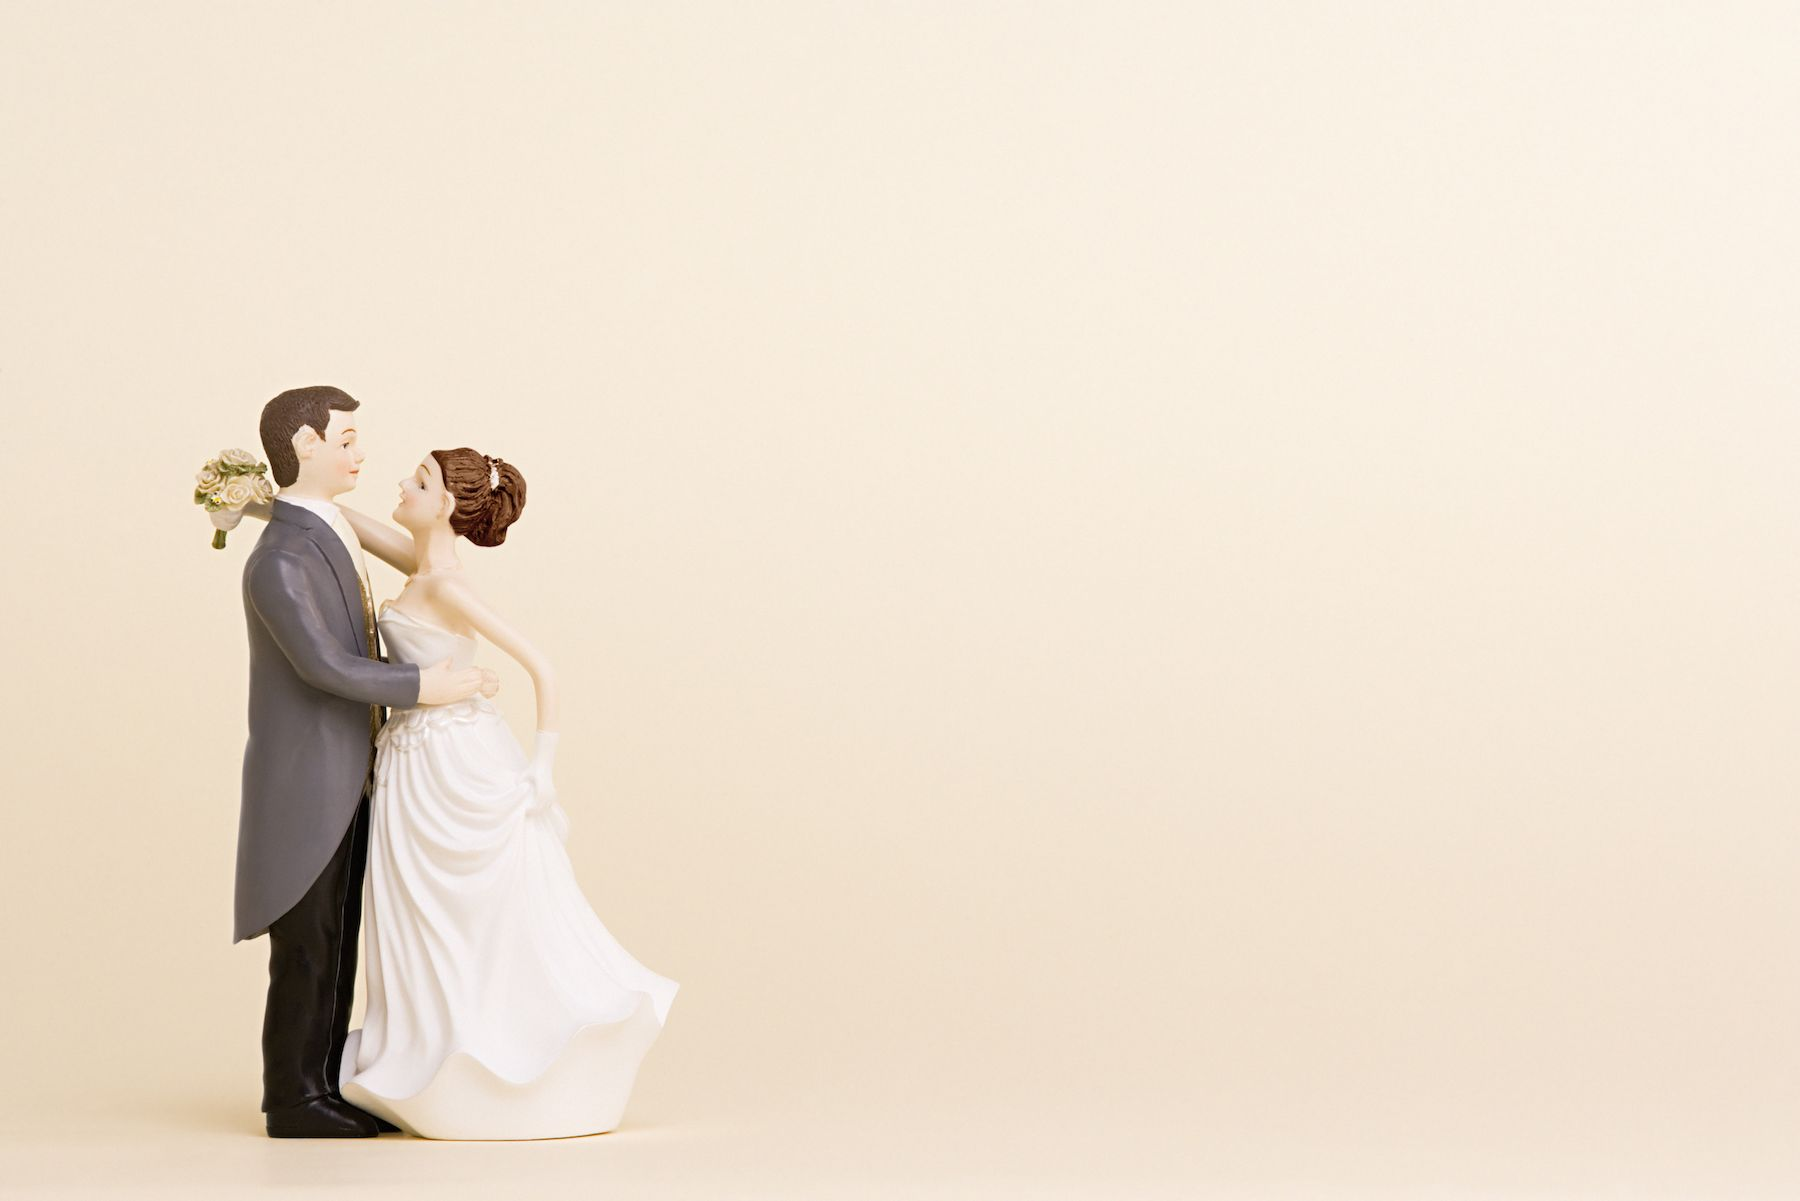 Hot Wife Challenge Tumblr 15 warning signs of divorce - marriage traits that lead to